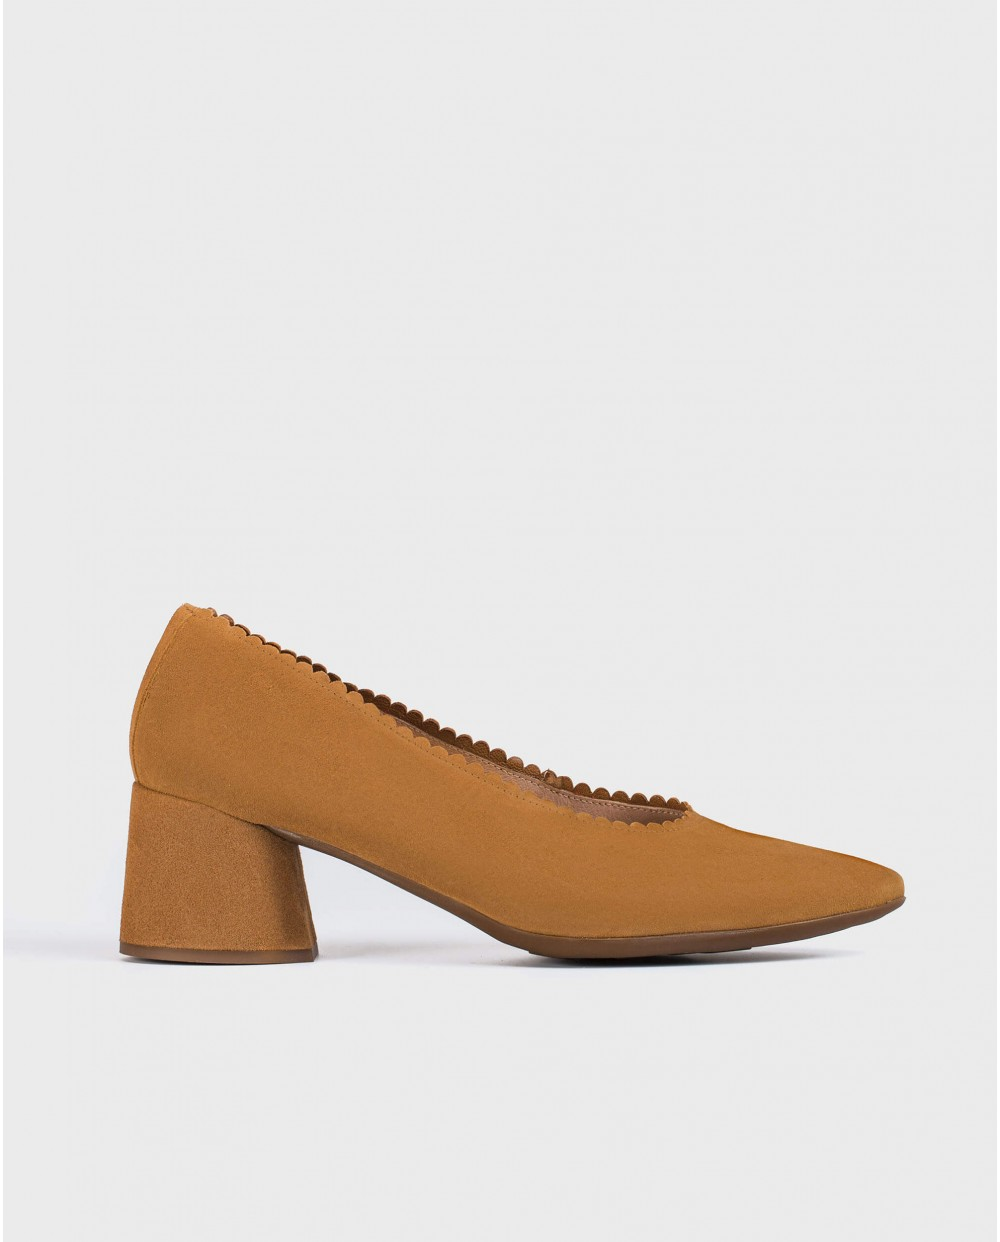 Wonders-Heels-Midi-heeled court shoe